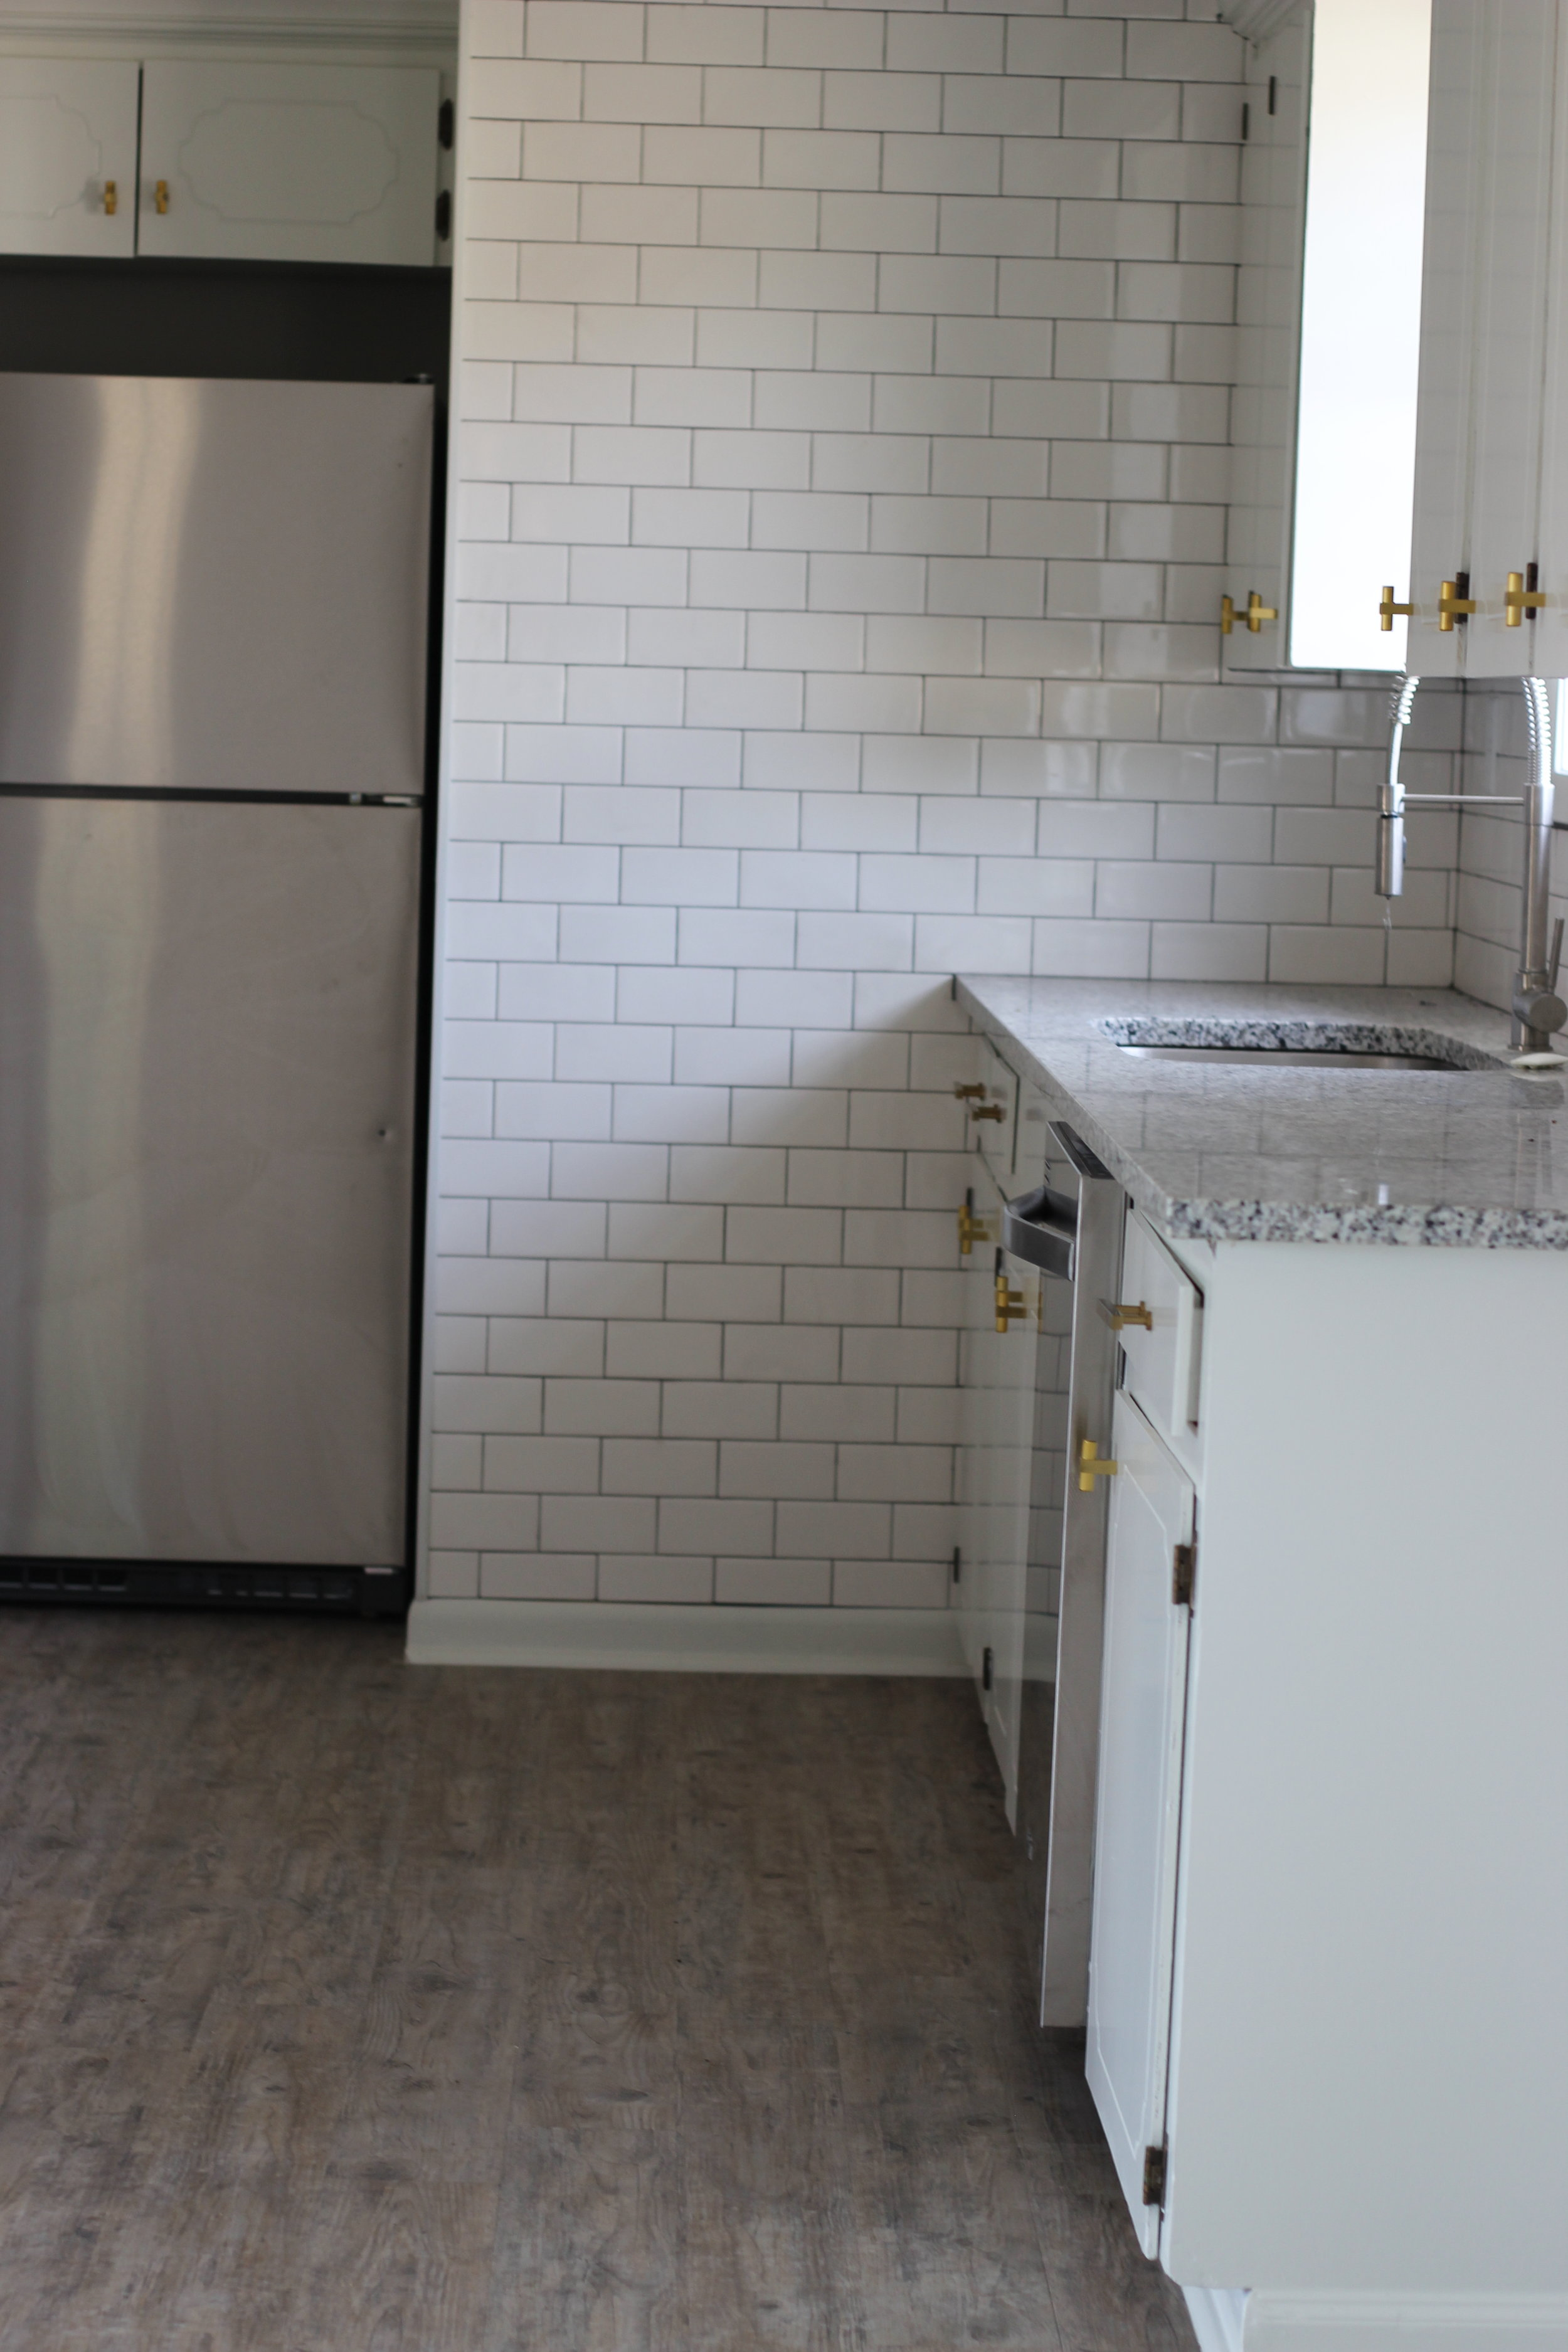 zimmerman_flip_house_after_picture_southern_arkansas_kitchen_wall.JPG